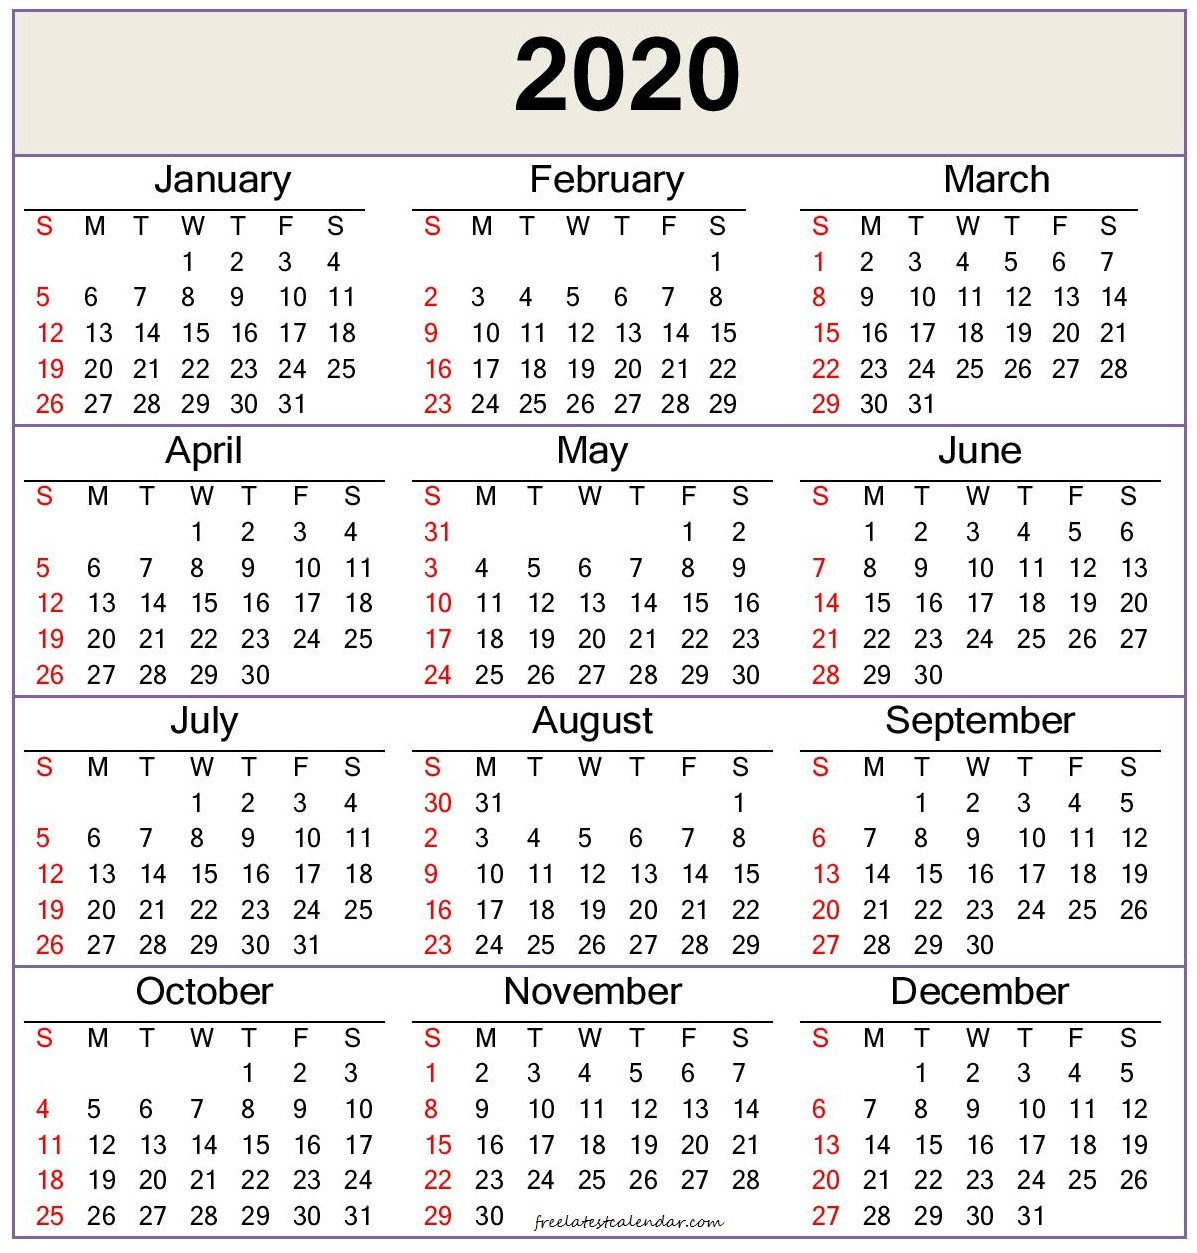 2020 Calendar Template — Word, Pdf  Freelatest Calendar intended for Word Calendar Template 2020